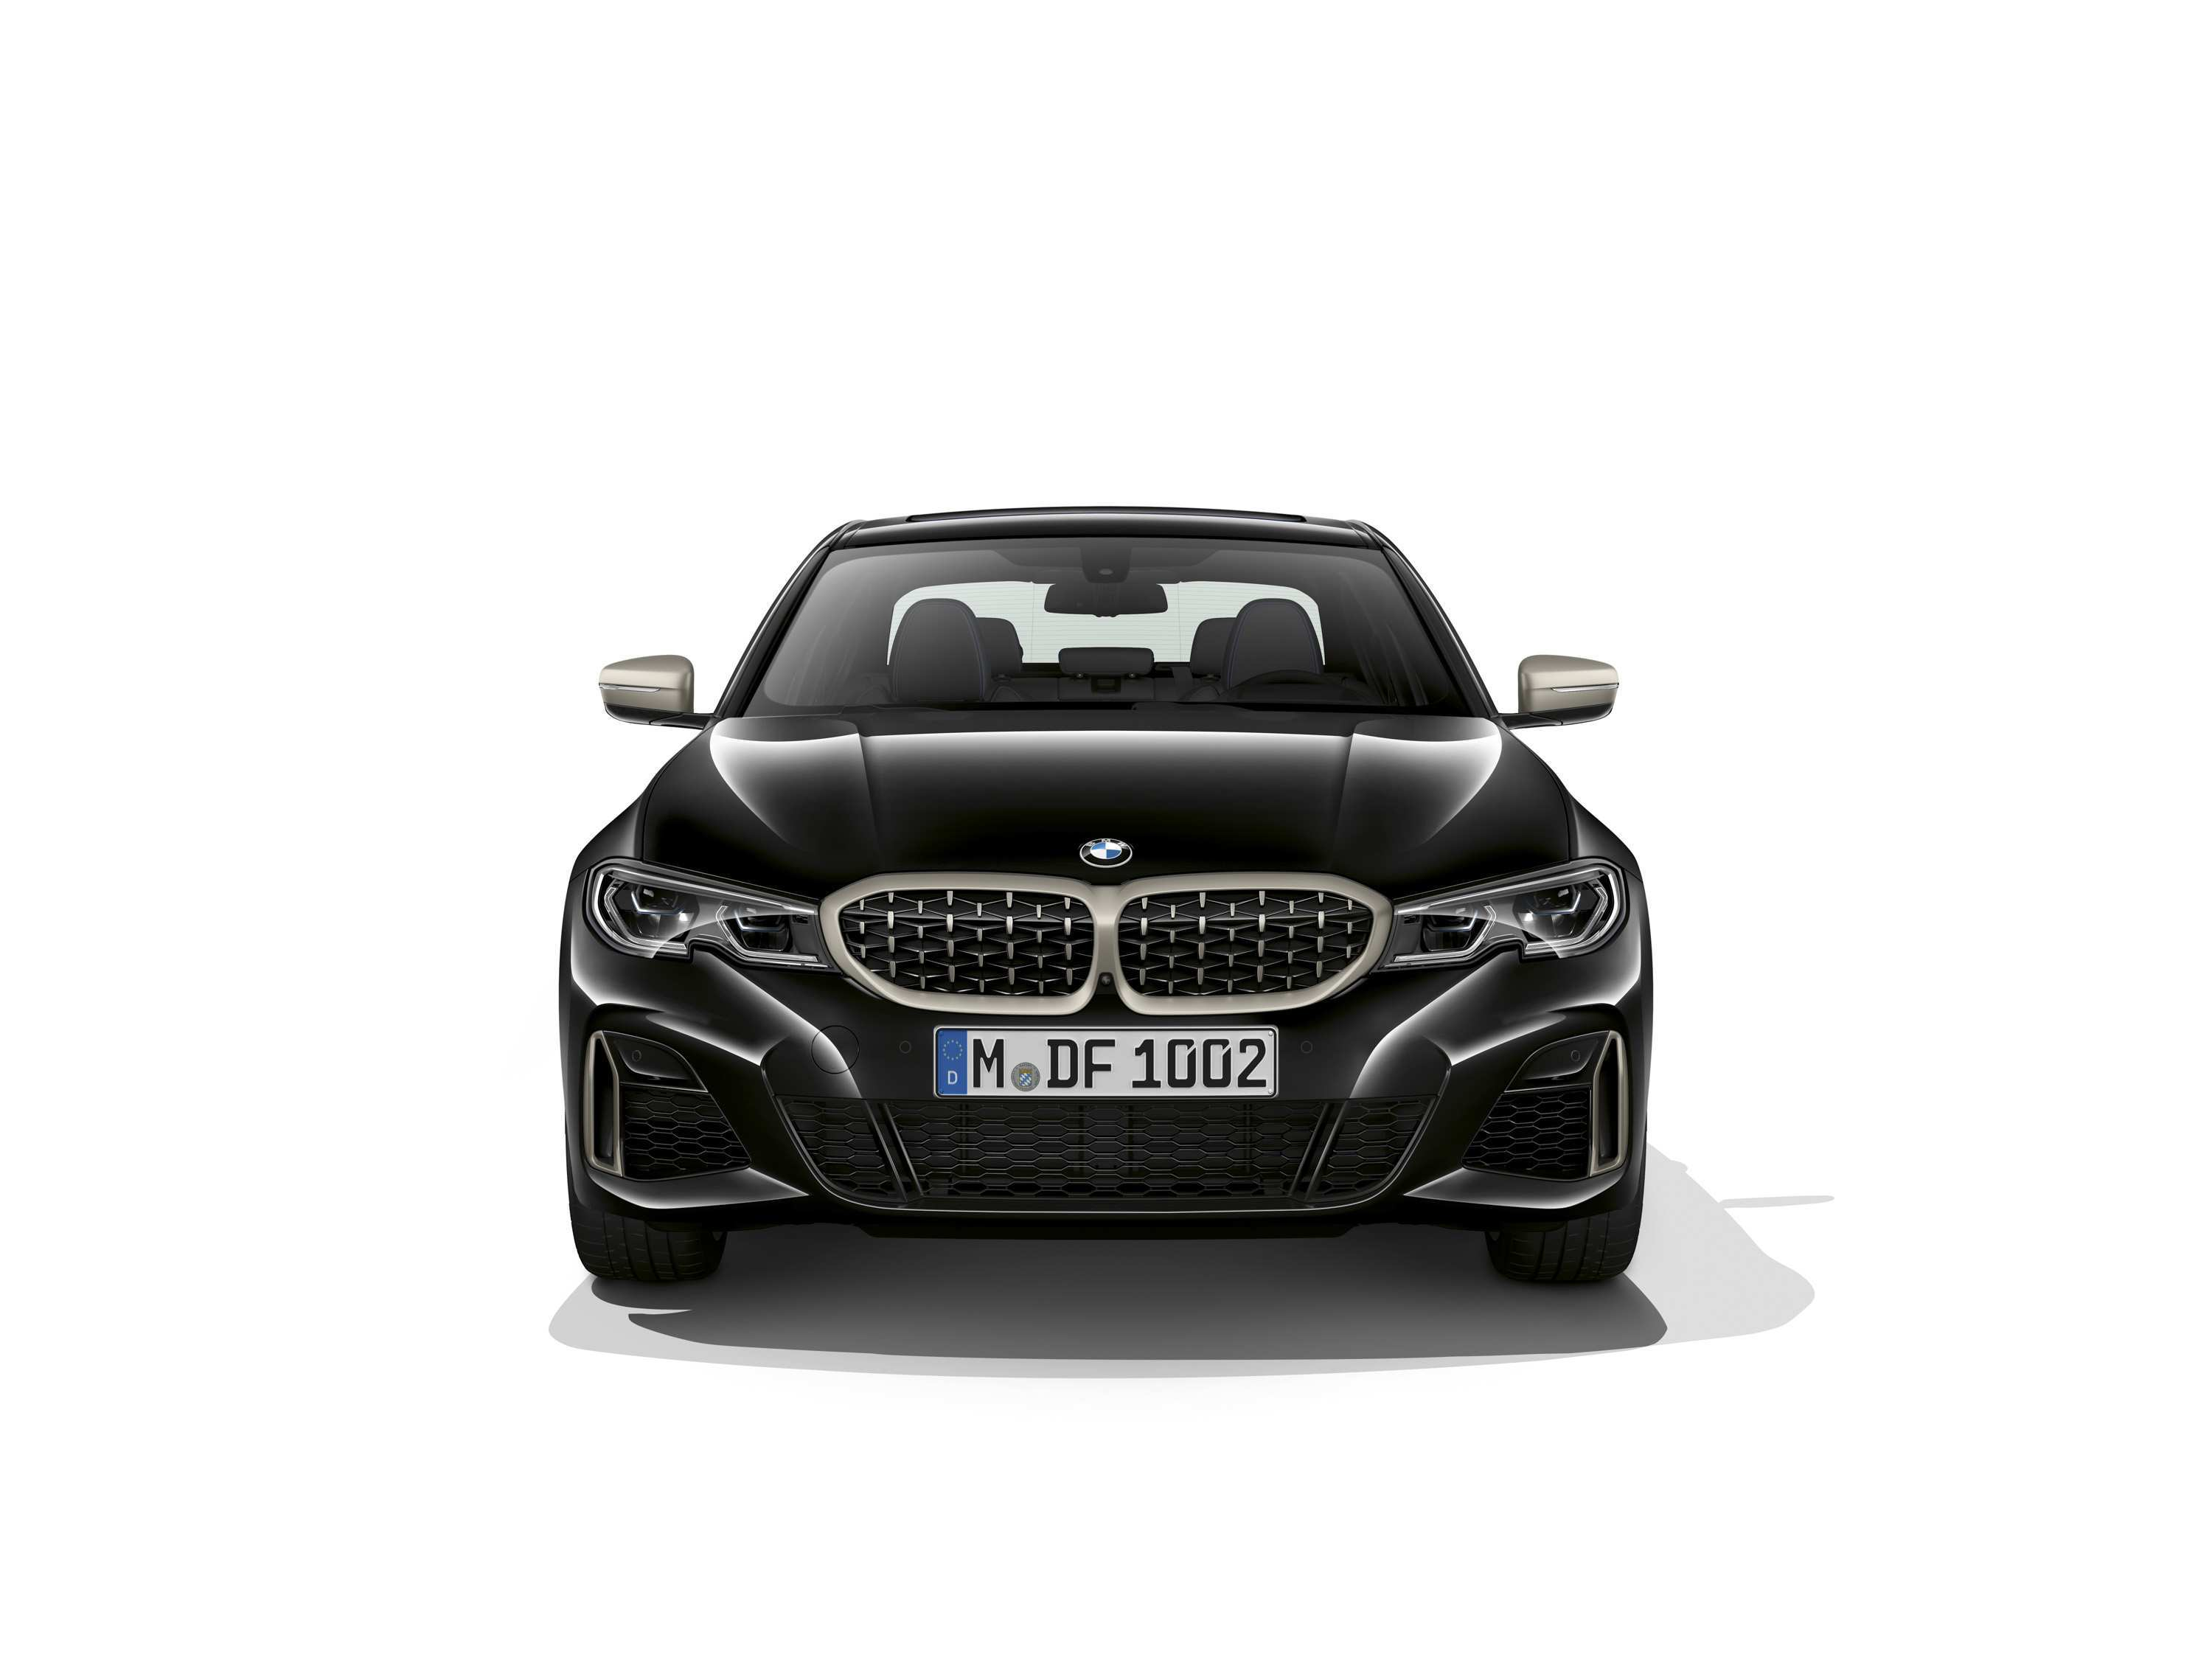 20 Great 2020 Bmw 340I Configurations for 2020 Bmw 340I